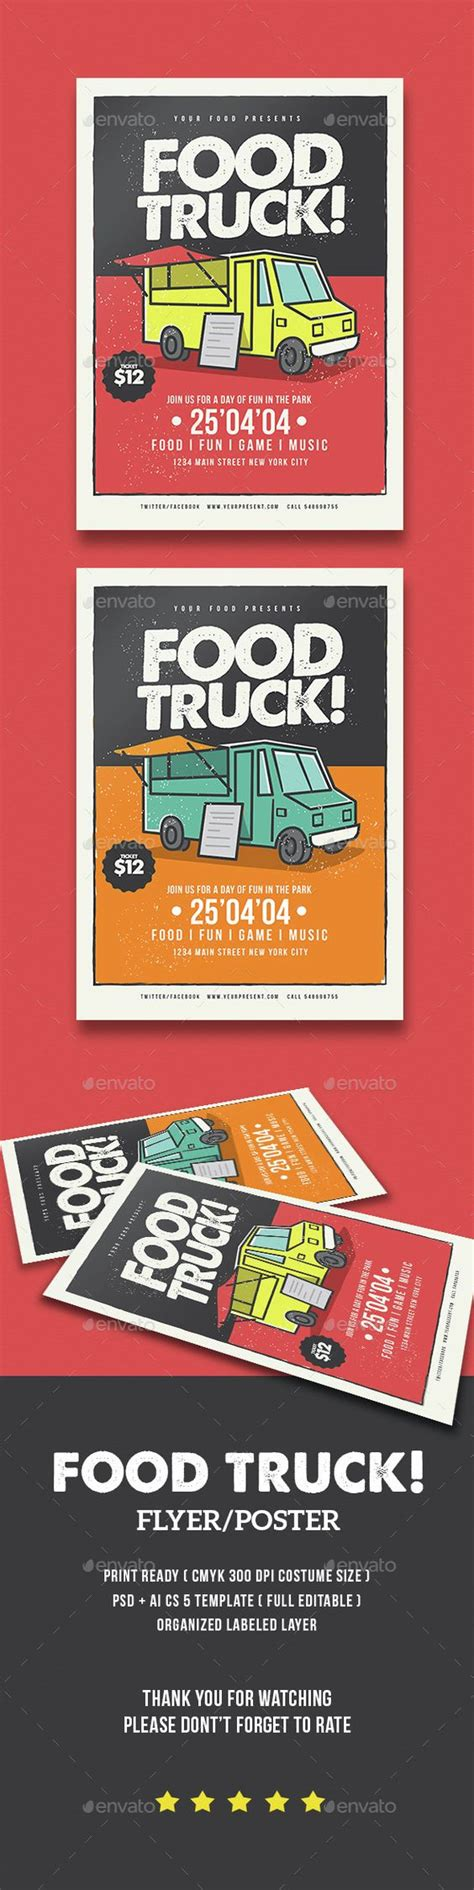 graphicriver flyer download food truck flyer template psd download here http